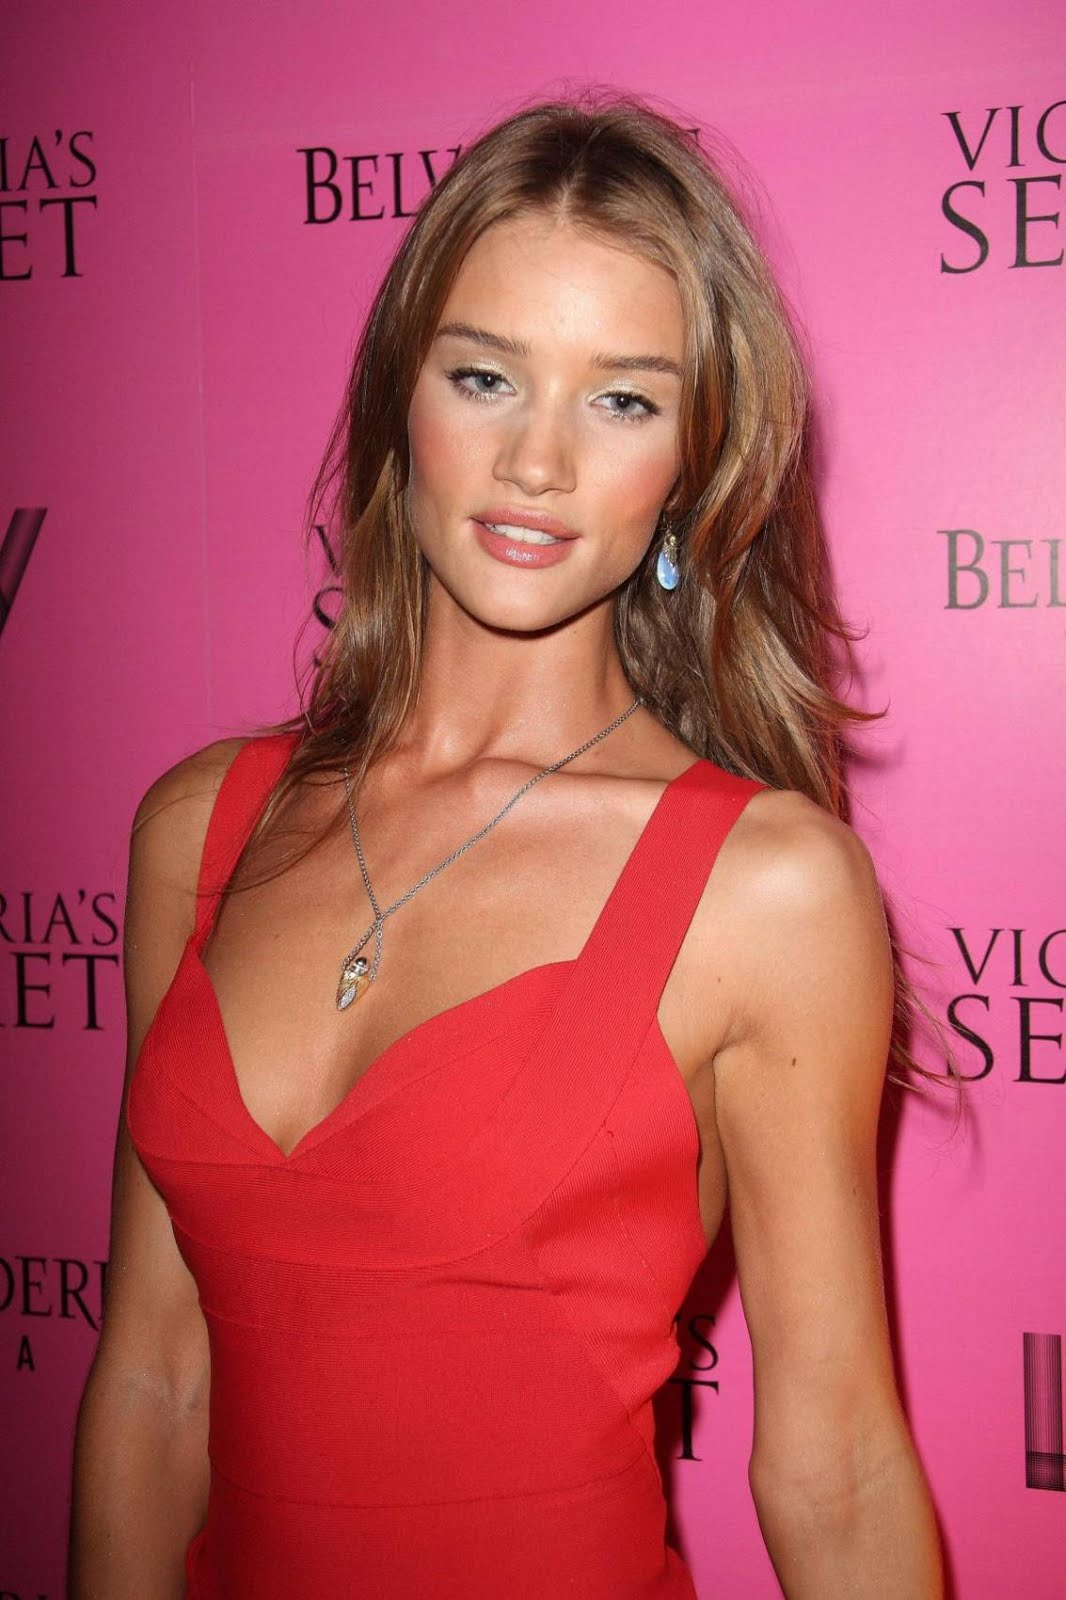 http://4.bp.blogspot.com/_tHaumj7GrMA/TUhwjJkpX4I/AAAAAAAAecA/U4hBSRLNh-c/s1600/Rosie-Huntington-Whiteley-%2540-Victorias-Secret-Fashion-Show-After-Party3.jpg